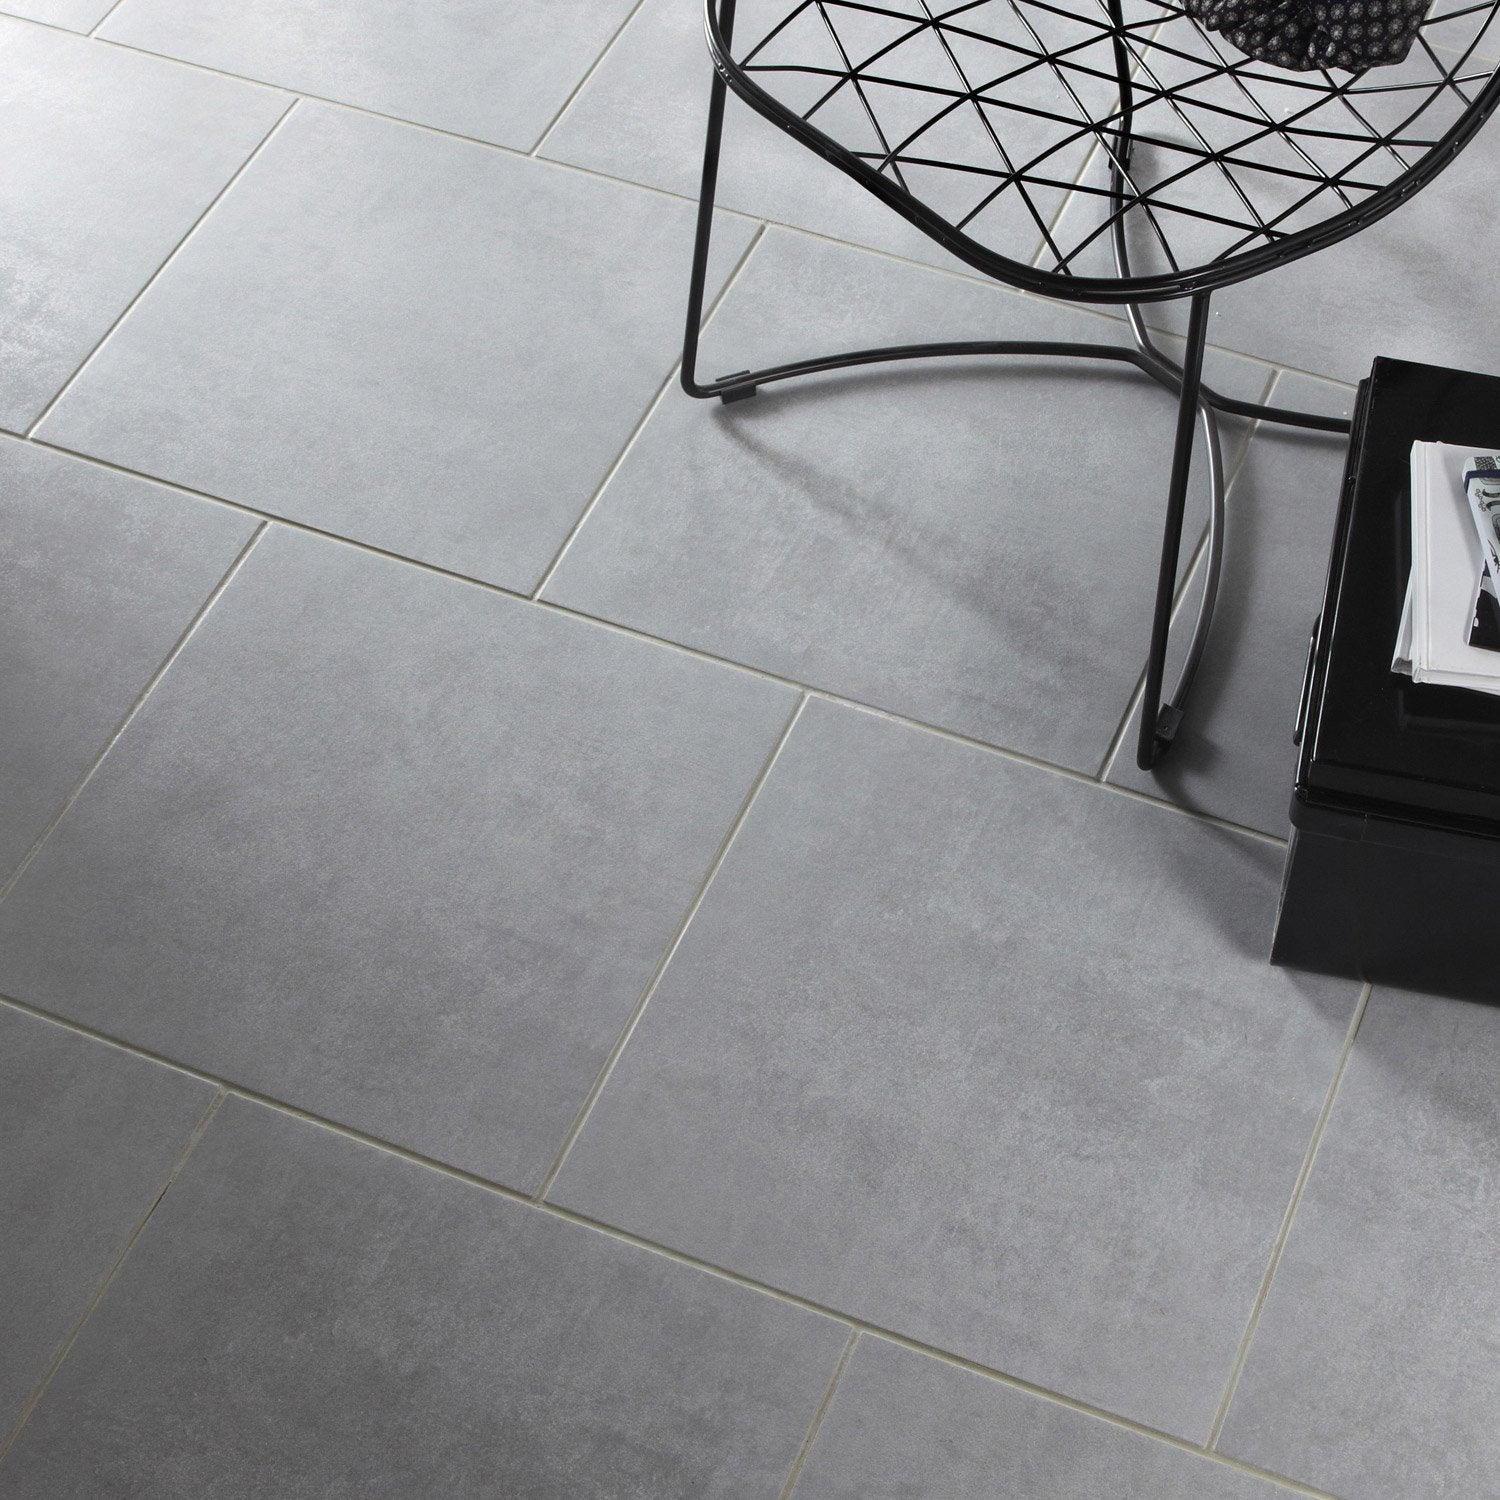 Carrelage pleine masse gris for Carrelage 80x80 gris